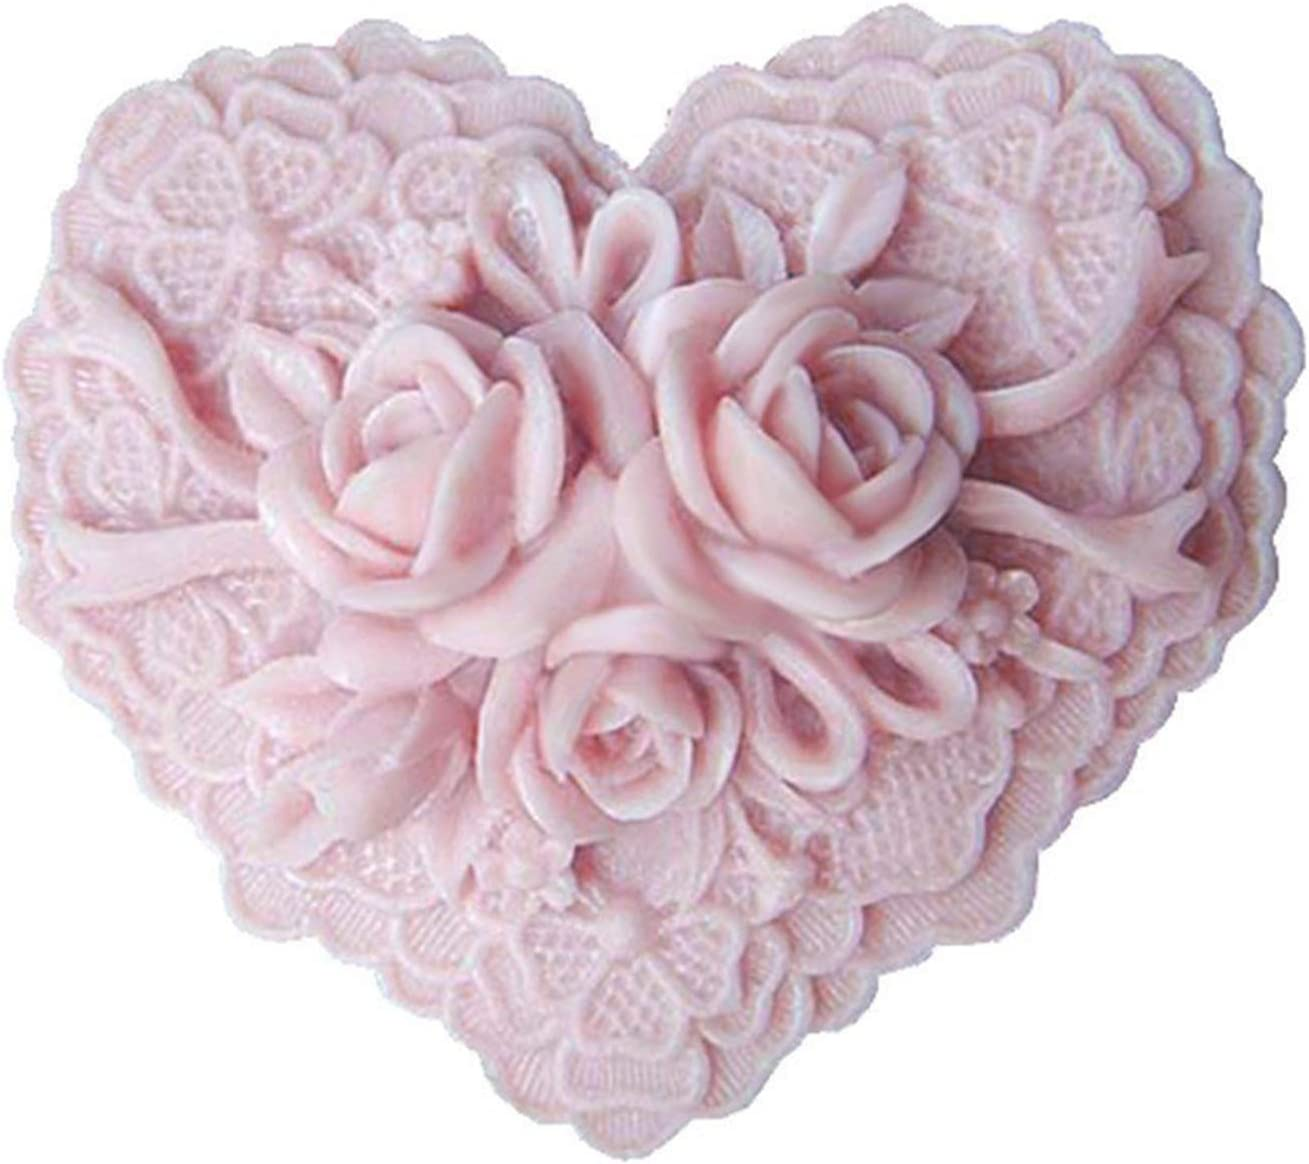 Rose Flower Silicone Soap Bar Molds Heart Shaped DIY Craft Handmade Soap Mold